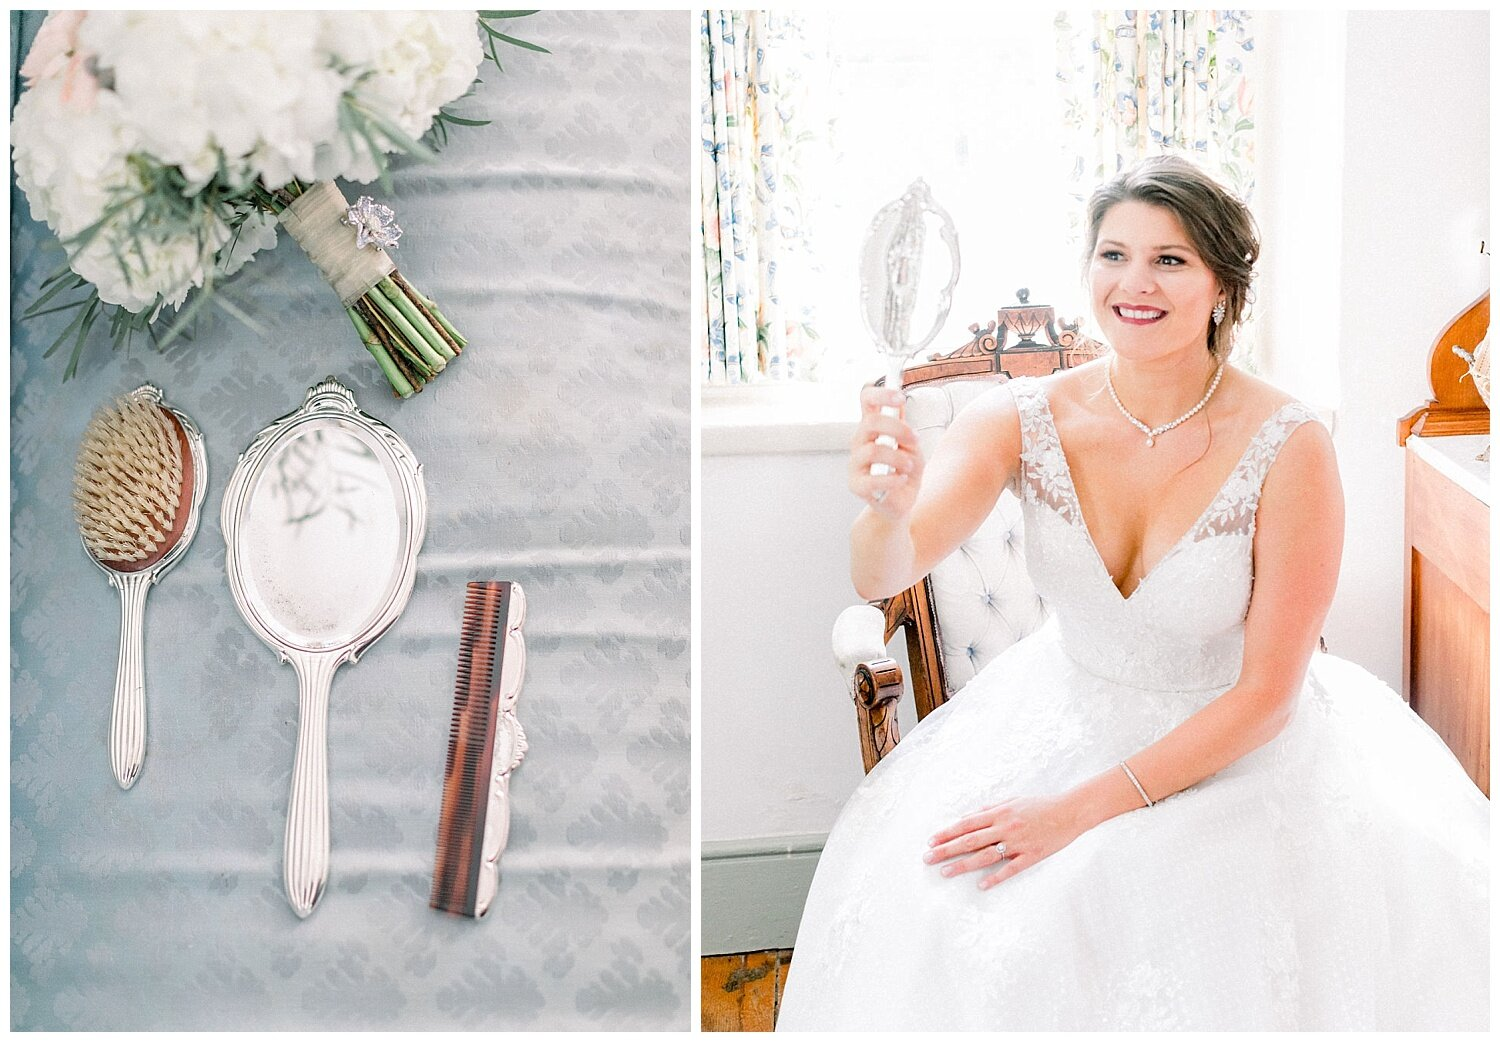 Featured her grandmother's hair brush set. Emily recreated a photo her grandmother had taken of her before her wedding. You could feel her spirit all around Emily.